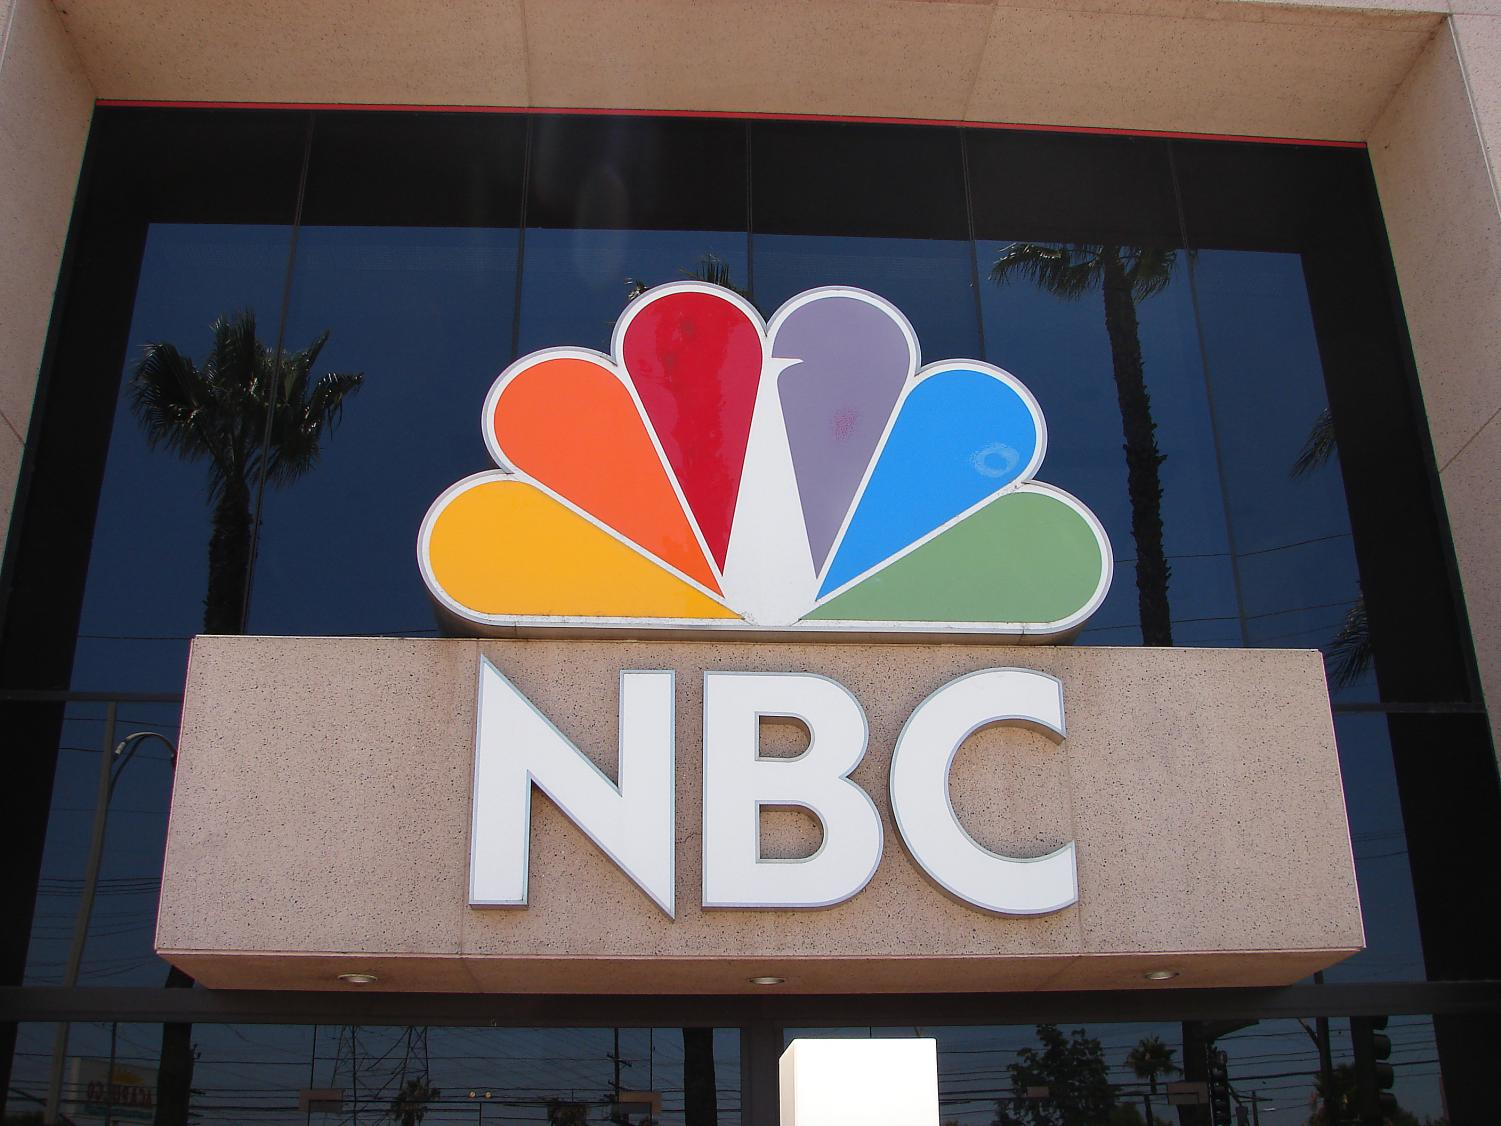 NBC is creating its own streaming service to compete with companies like Hulu. Photo via flickr.